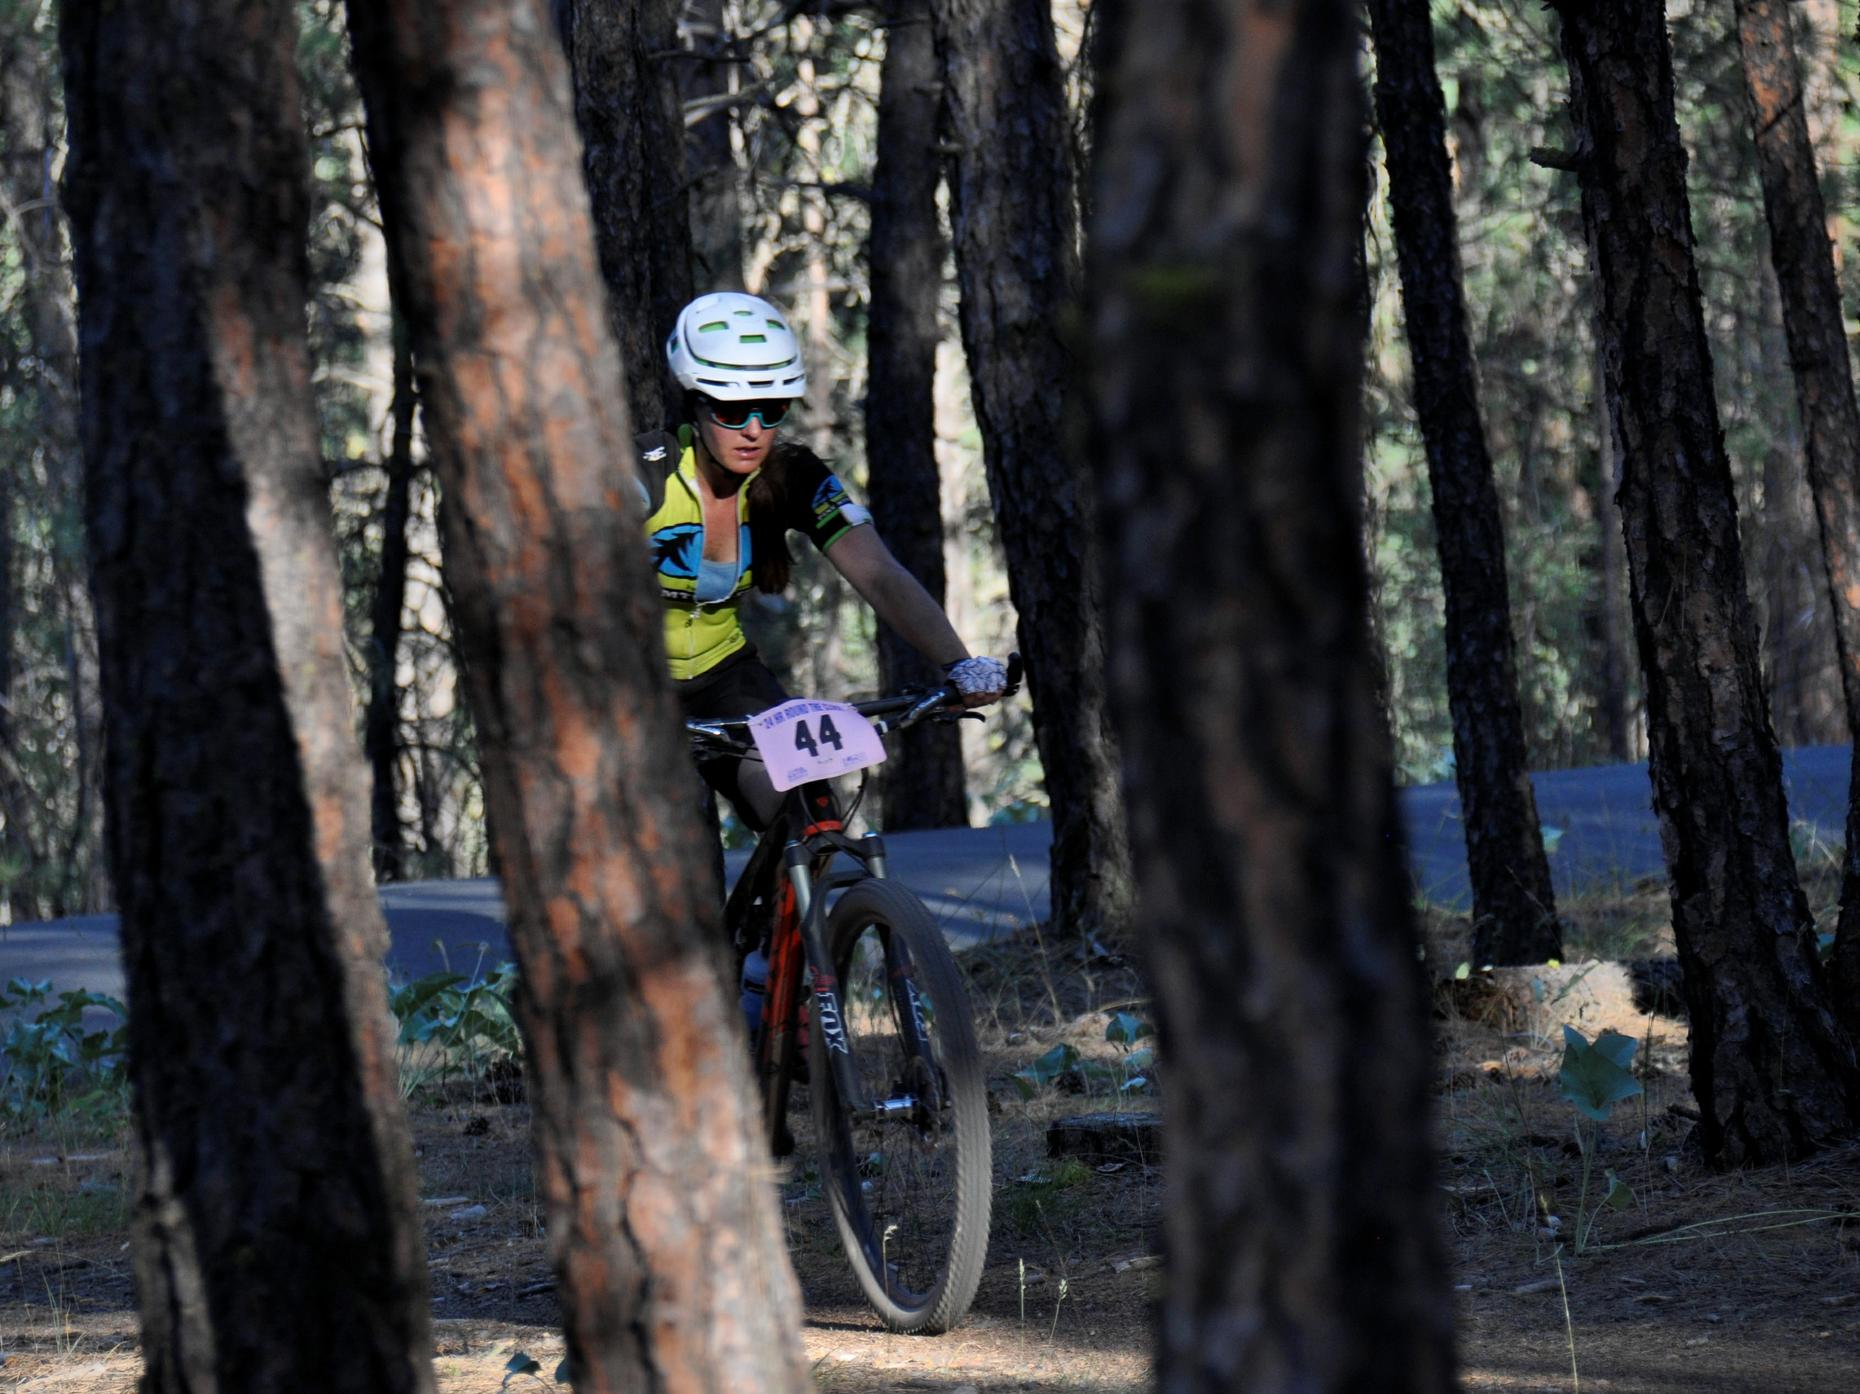 A rider follows single track through the ponderosa pines during the 24 Hours Round the Clock mountain bike race on May 23, 2015, at Riverside State Park. (Photo Courtesy of Rich Landers)